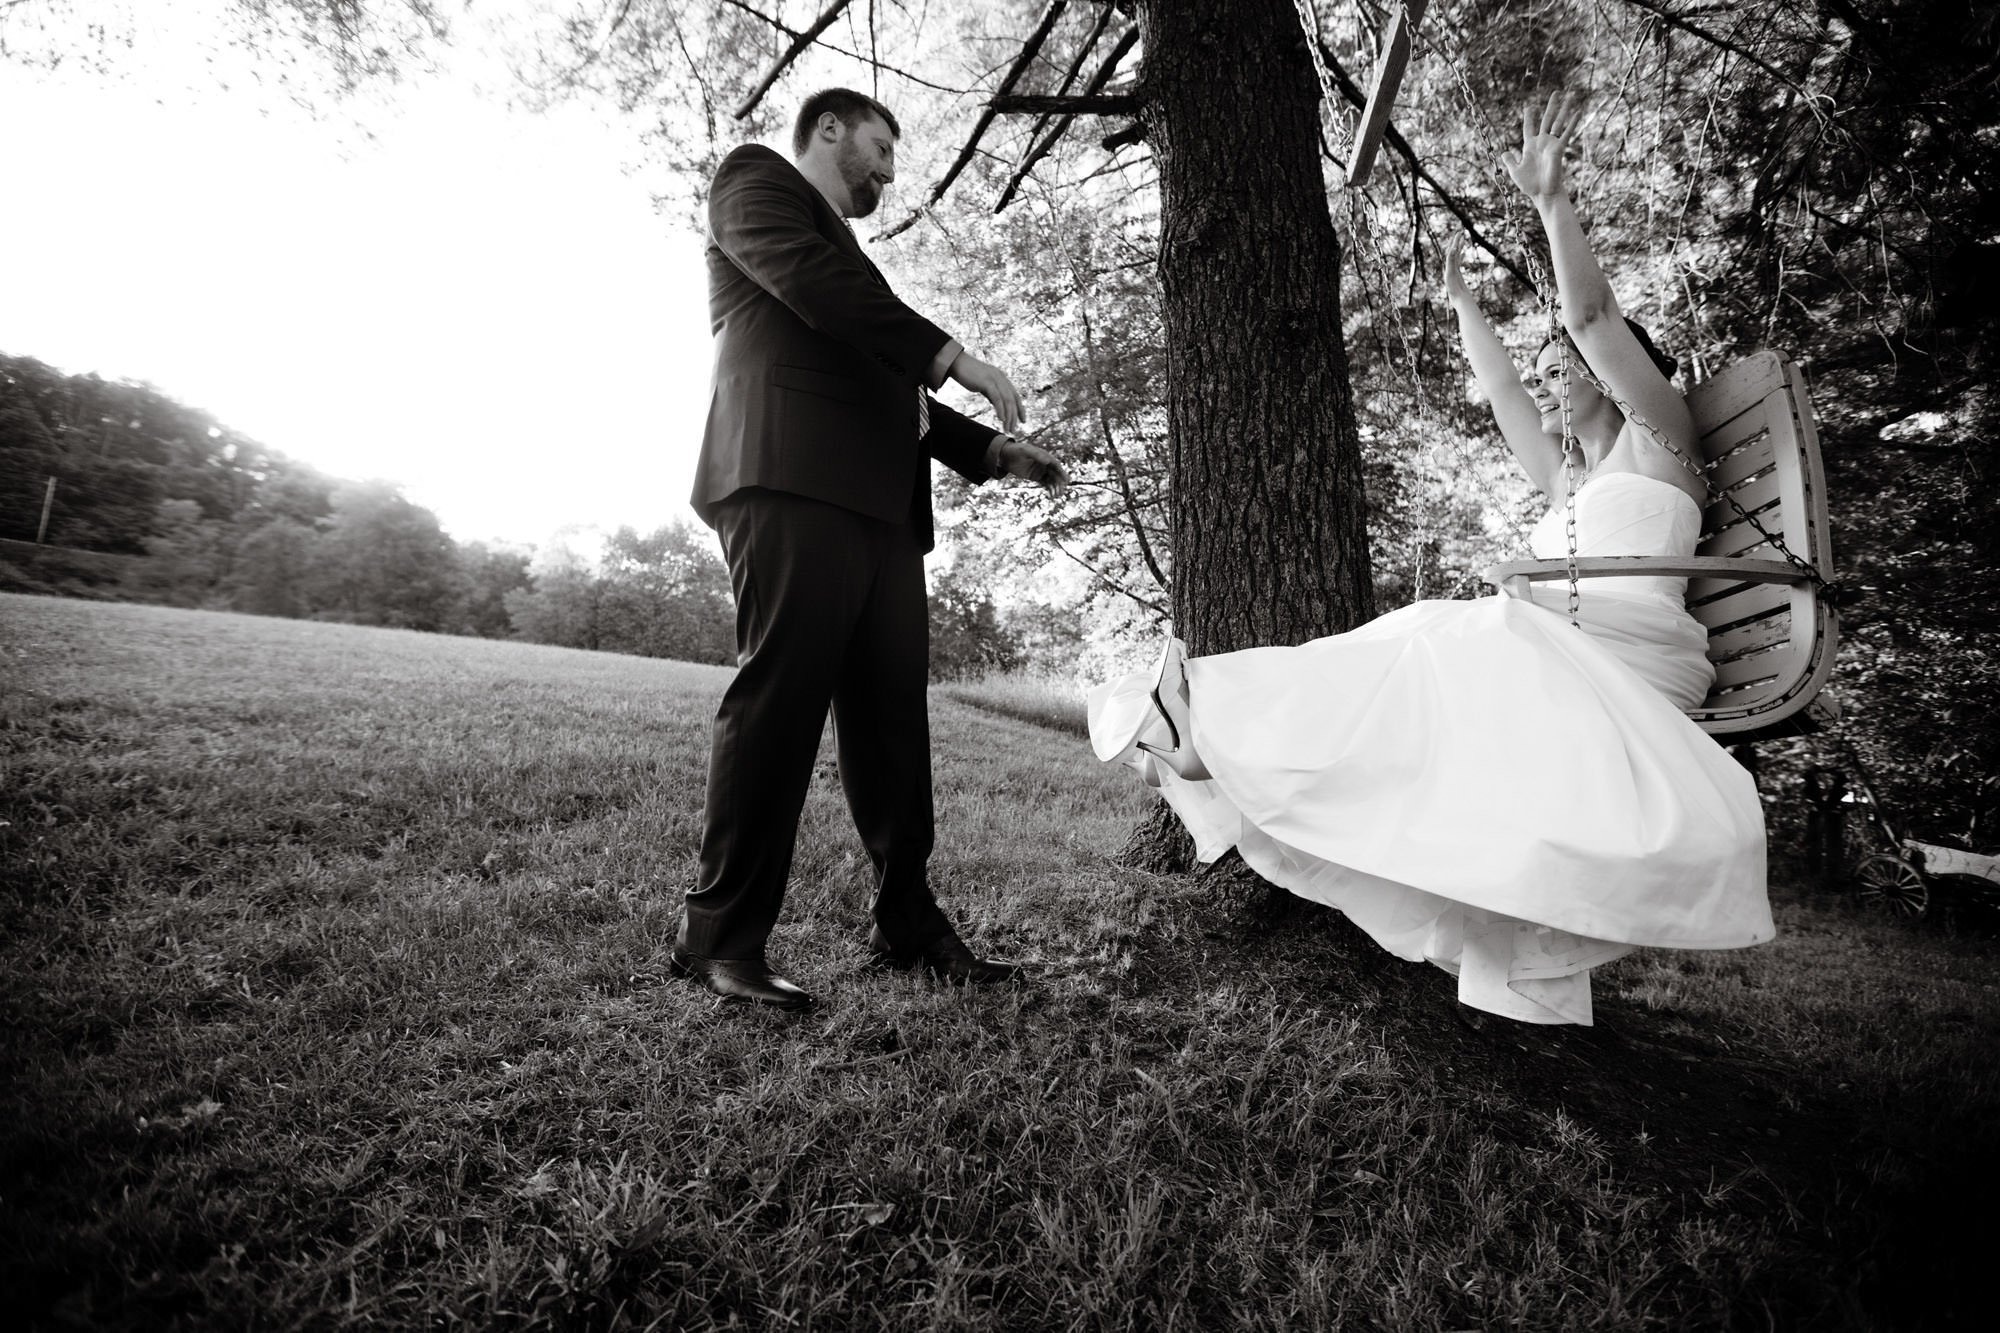 The pushes his bride on the swing during cocktail hour of their Chanteclaire Farm Wedding.